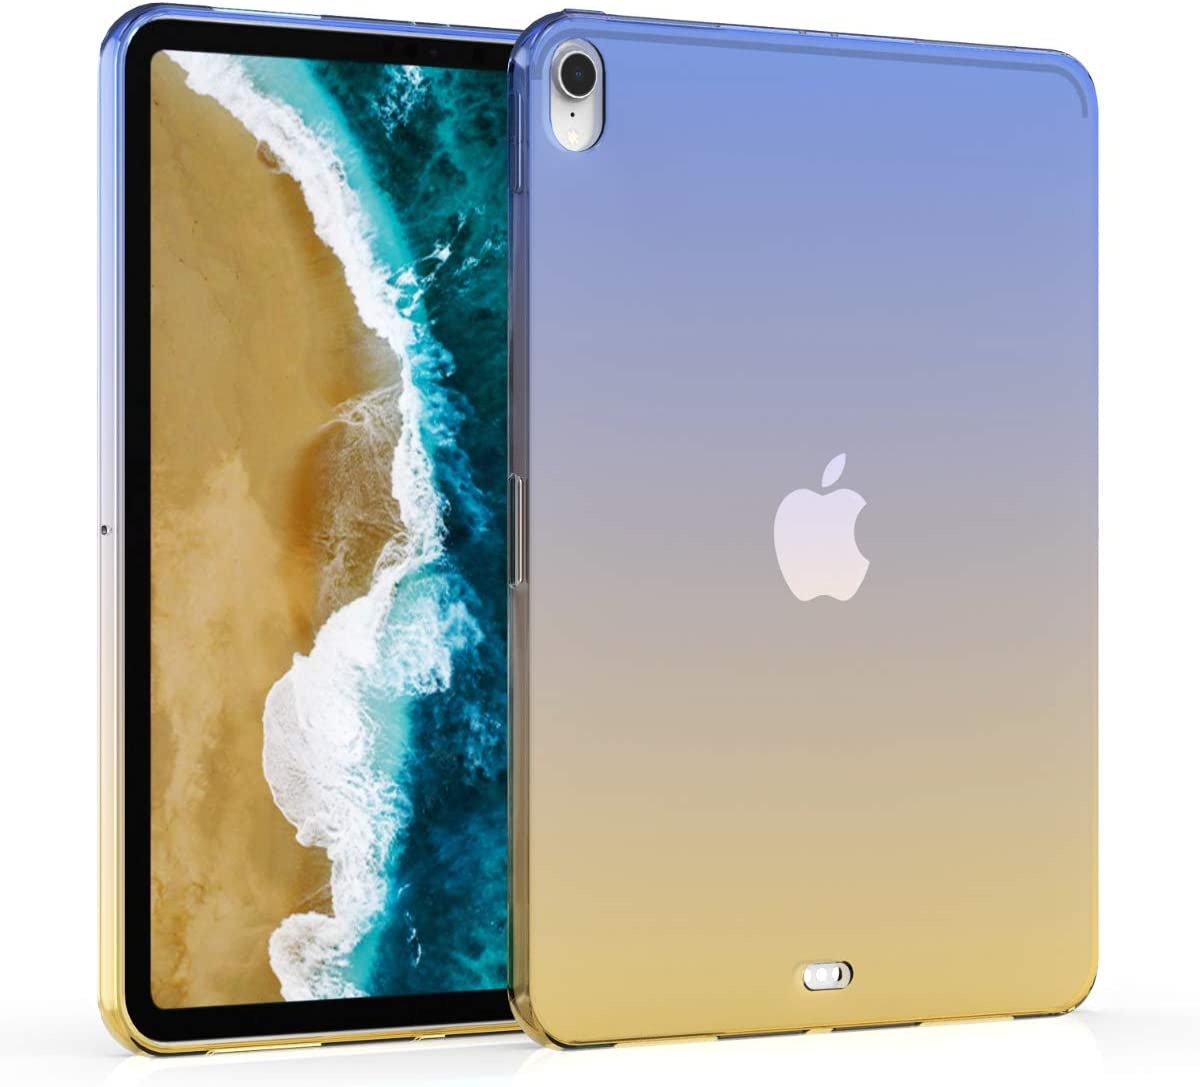 "kwmobile TPU Silicone Case Compatible with Apple iPad Pro 11"" (2018) - Soft Flexible Shock Absorbent Cover - Bicolor Blue/Yellow/Transparent"